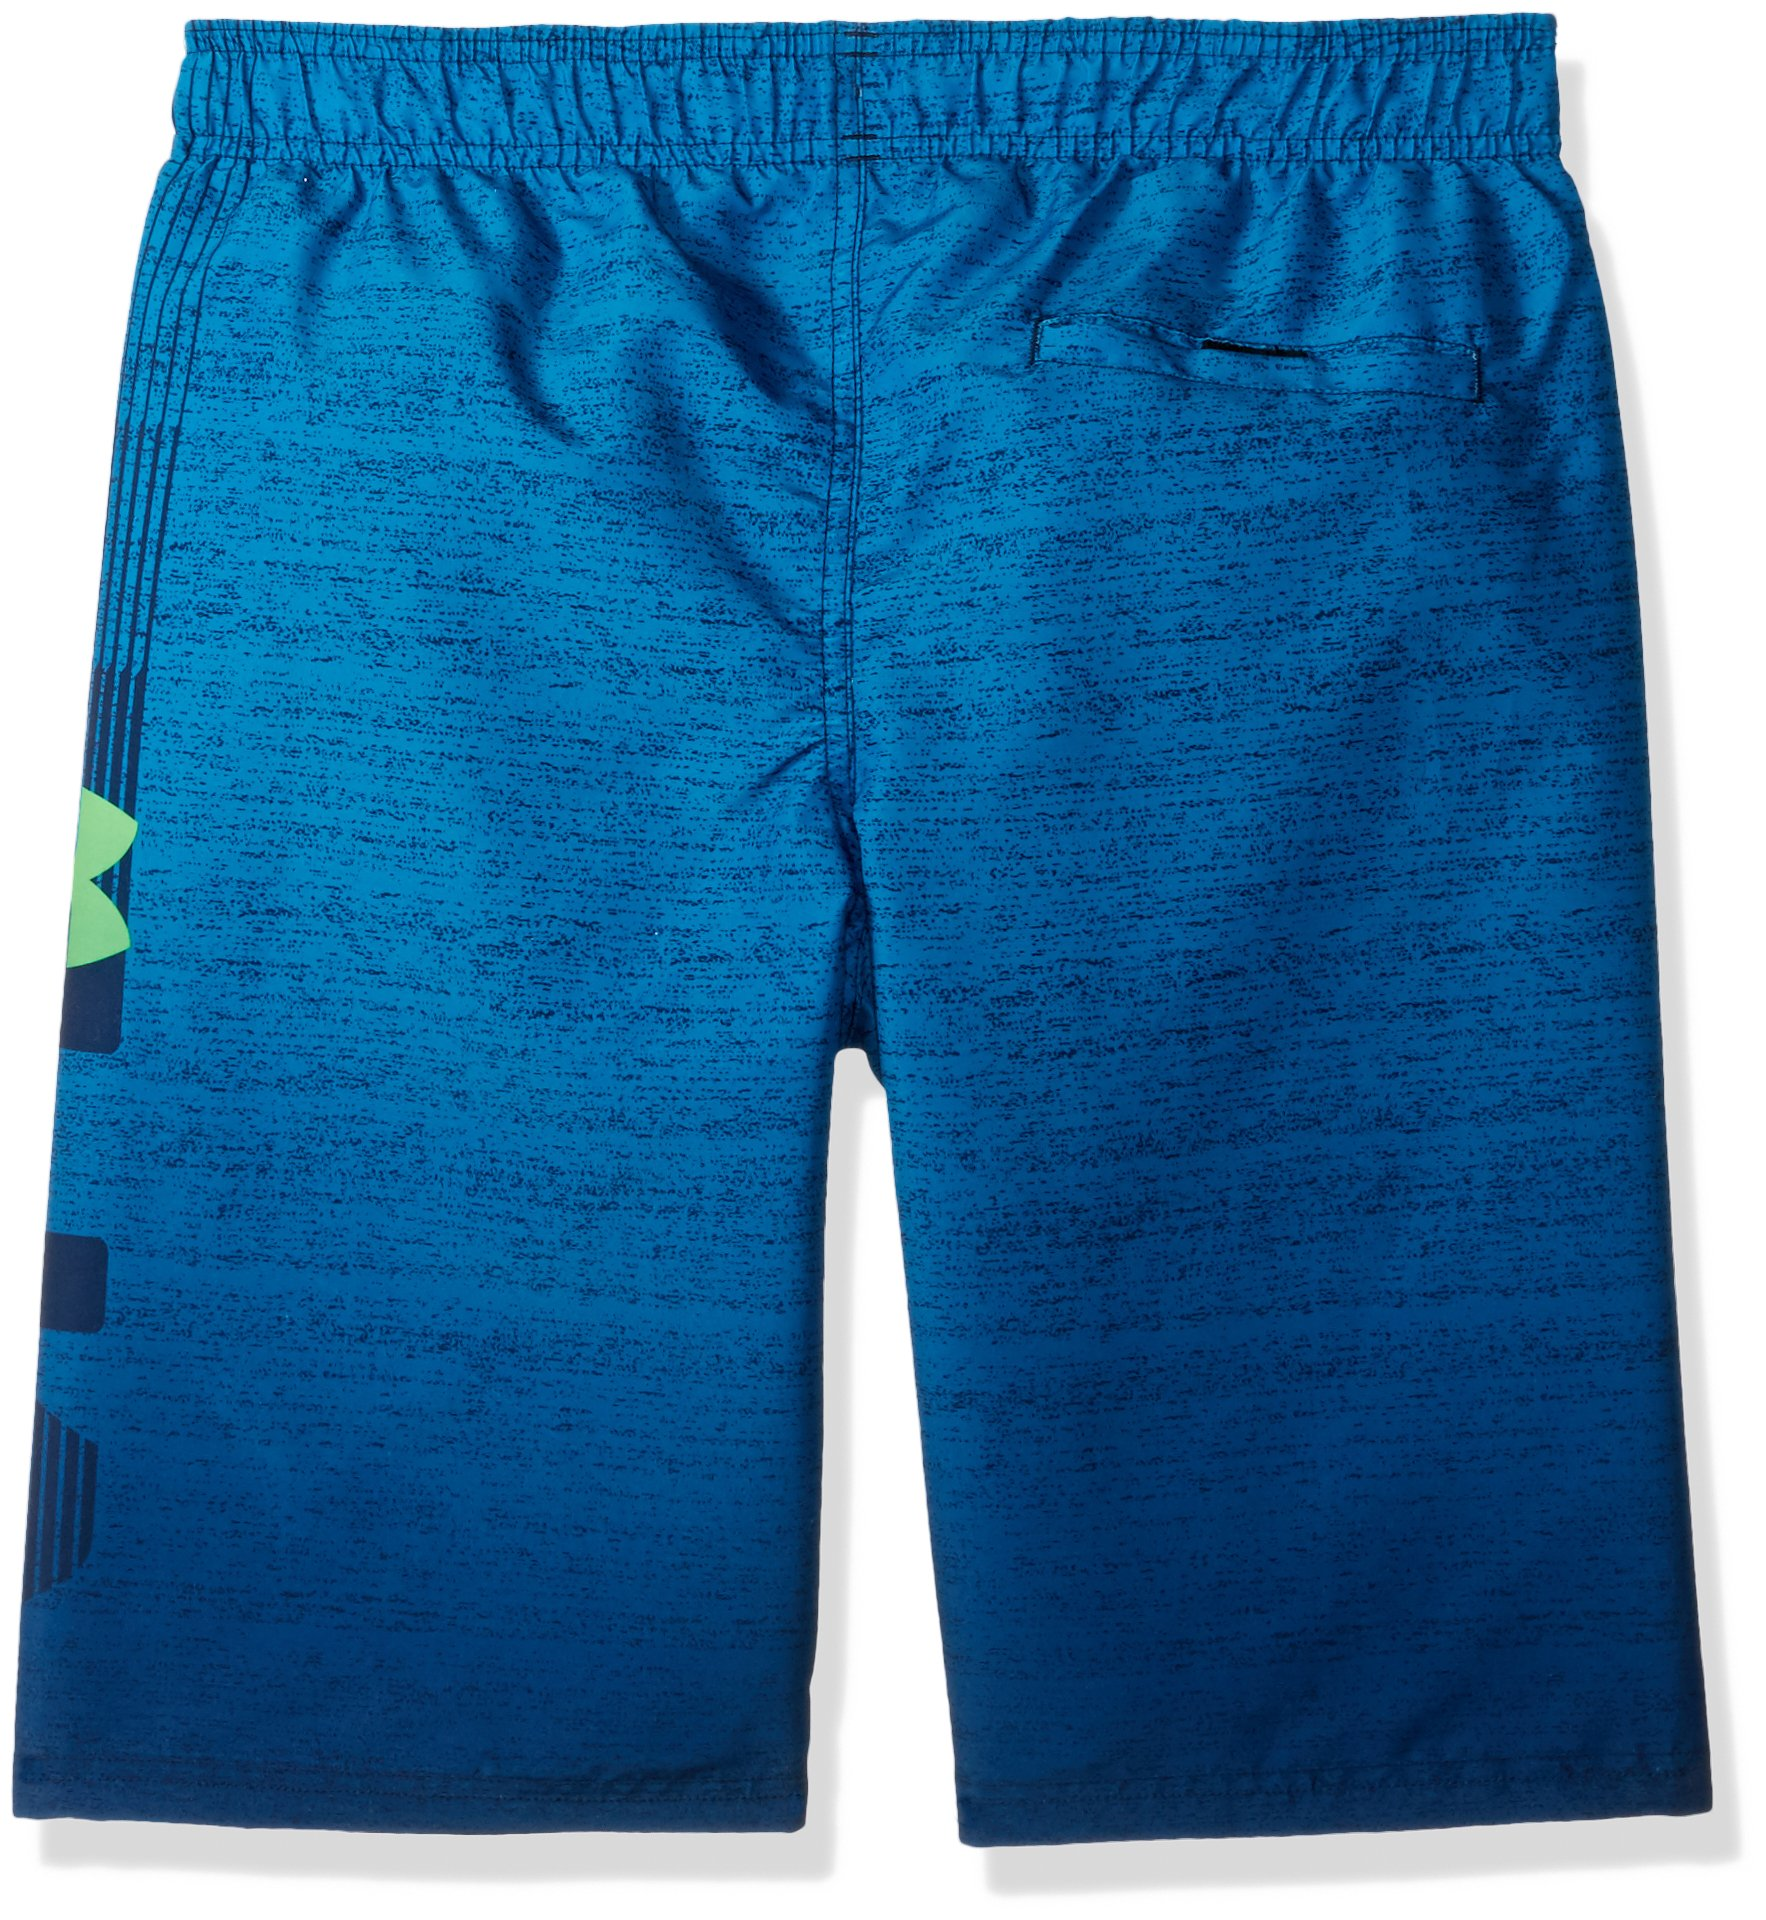 Under Armour Dipper Volley Big Boys' Swim Shorts, Academy/Orange, X-Large by Under Armour (Image #2)